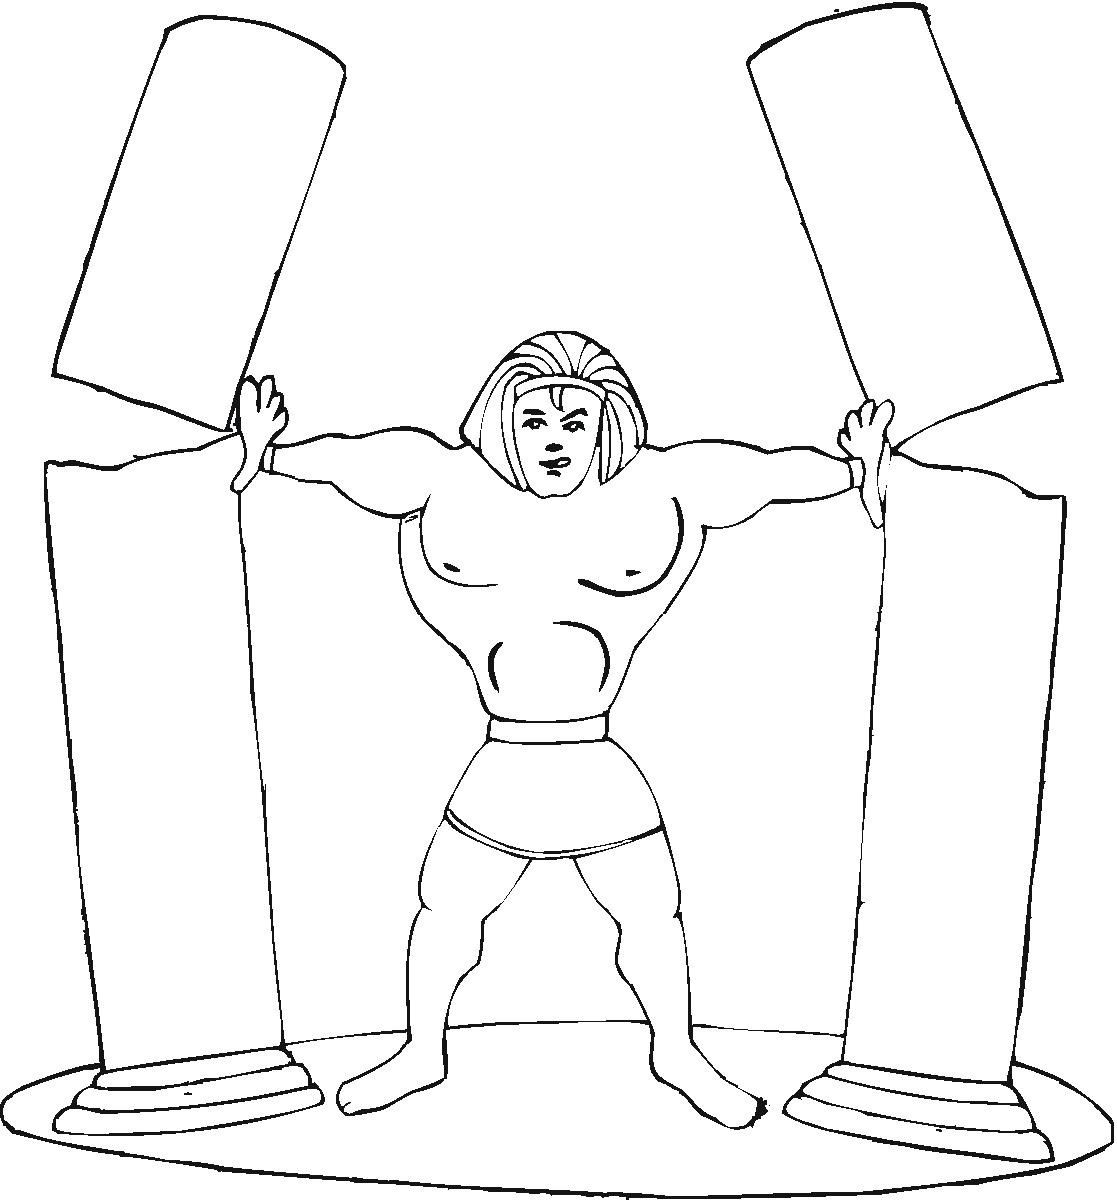 Samson Coloring Page Bible Coloring Pages Bible Drawing Bible Coloring